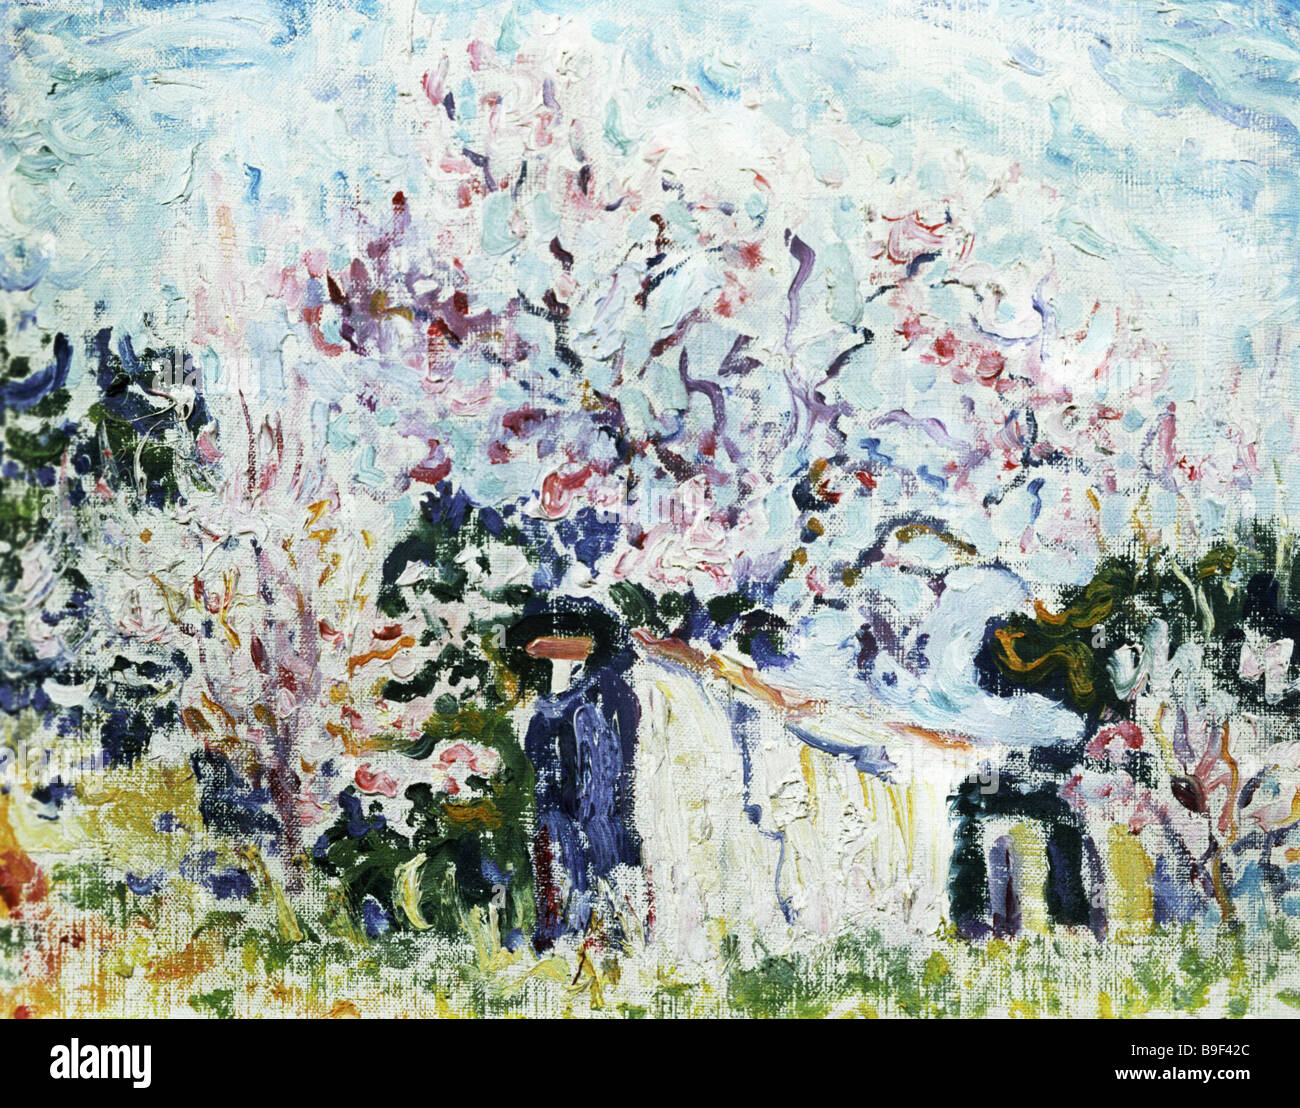 Reproduction of Paul Signac s 1863 1935 painting Spring in Provence from the Pushkin Fine Arts Museum collection Stock Photo